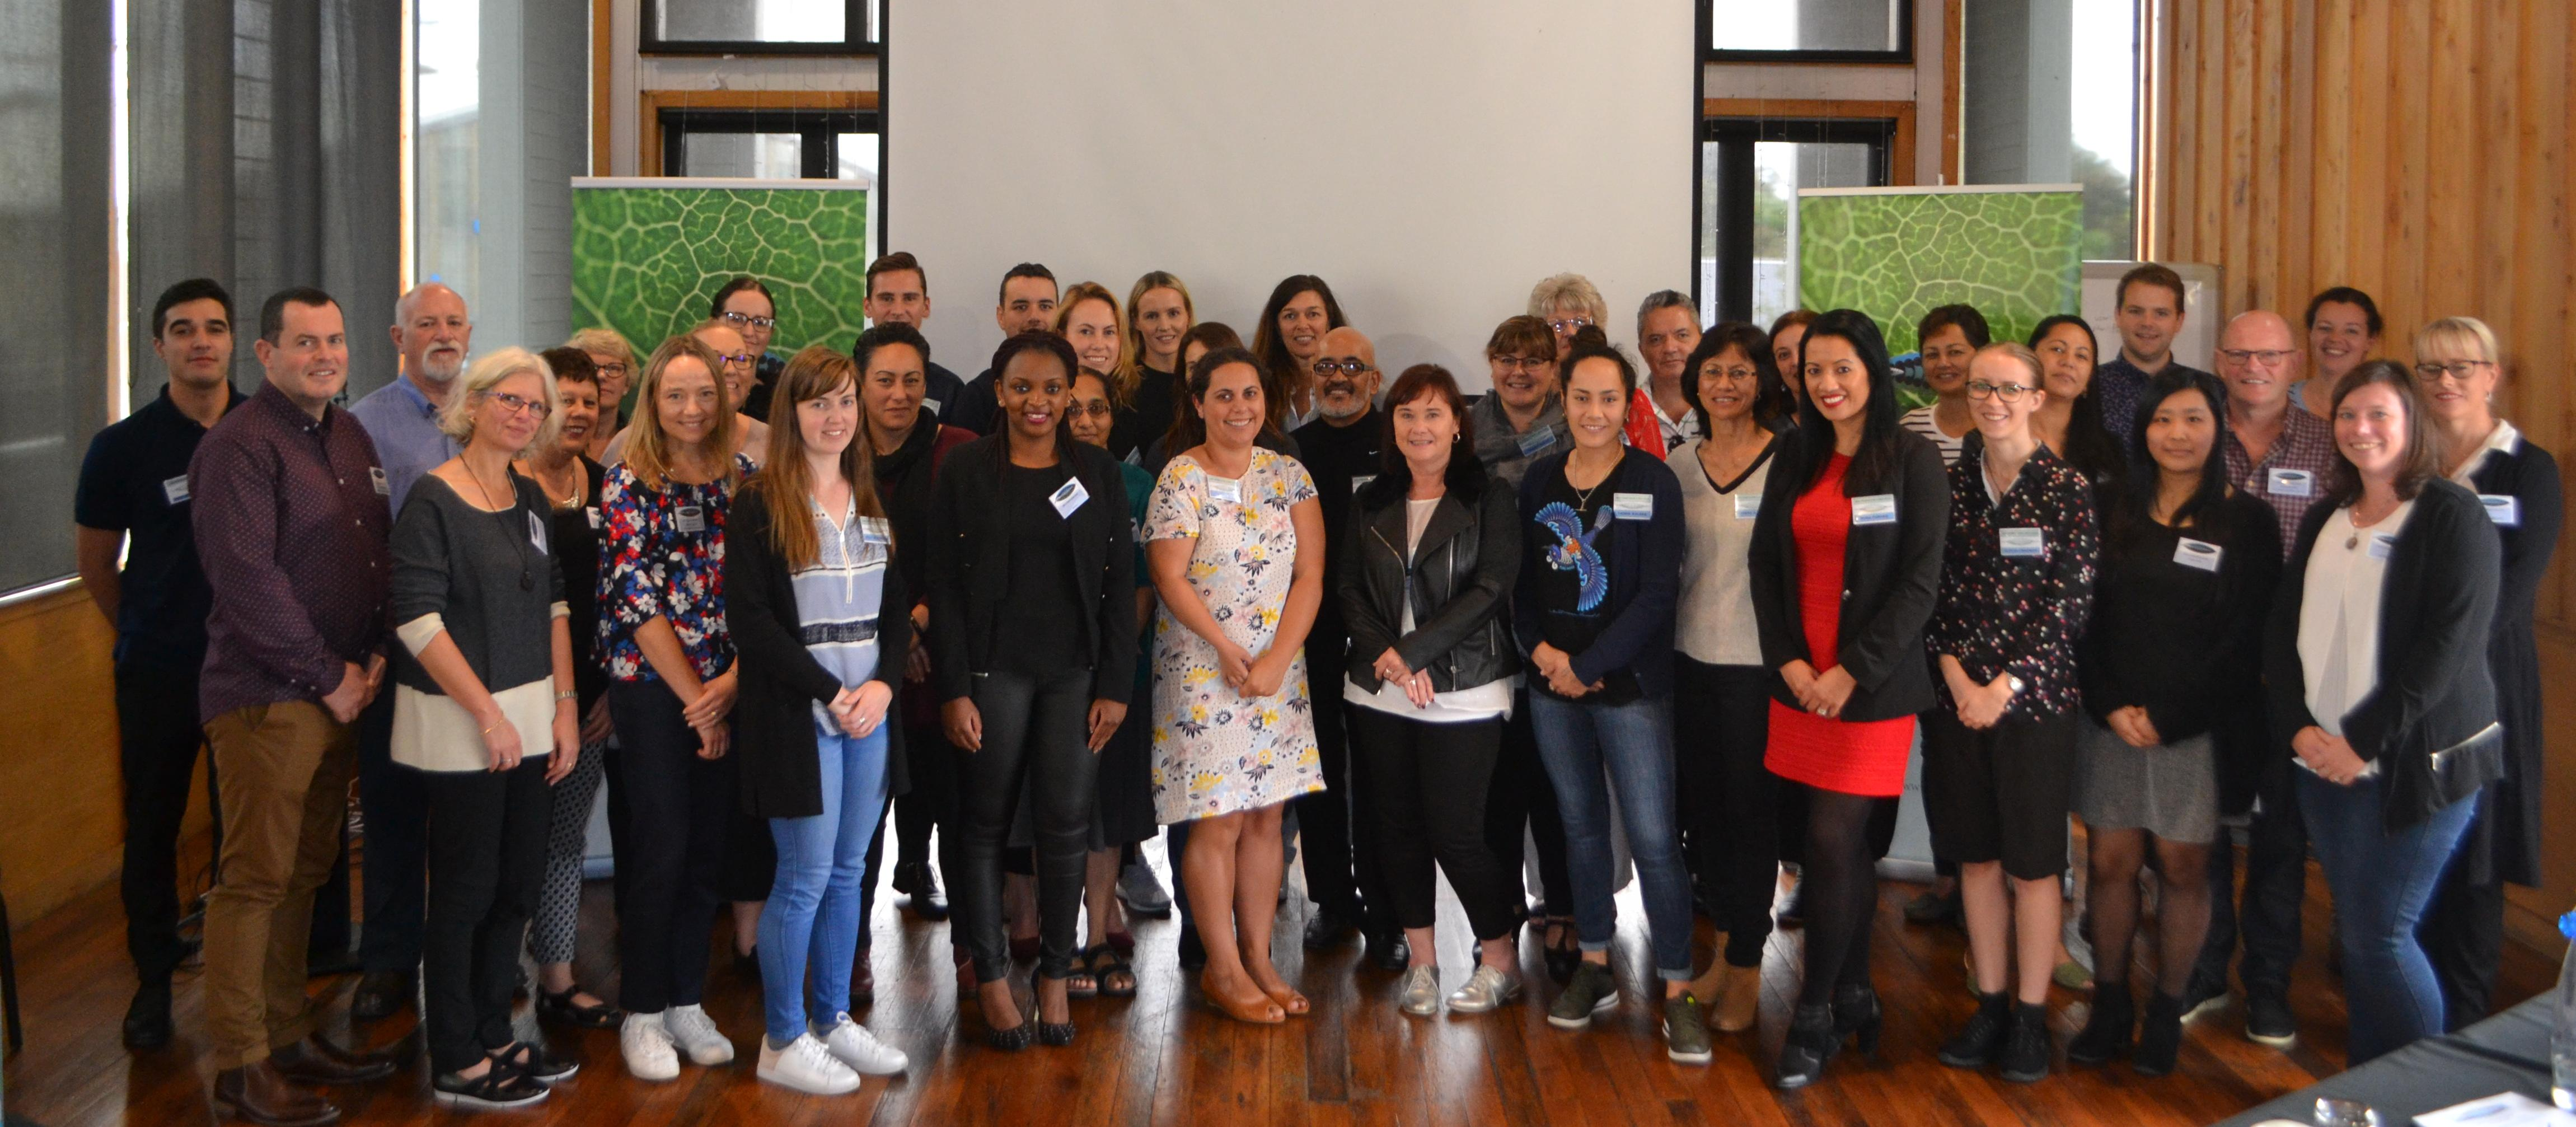 Maori Pharmacists' Symposium group shot